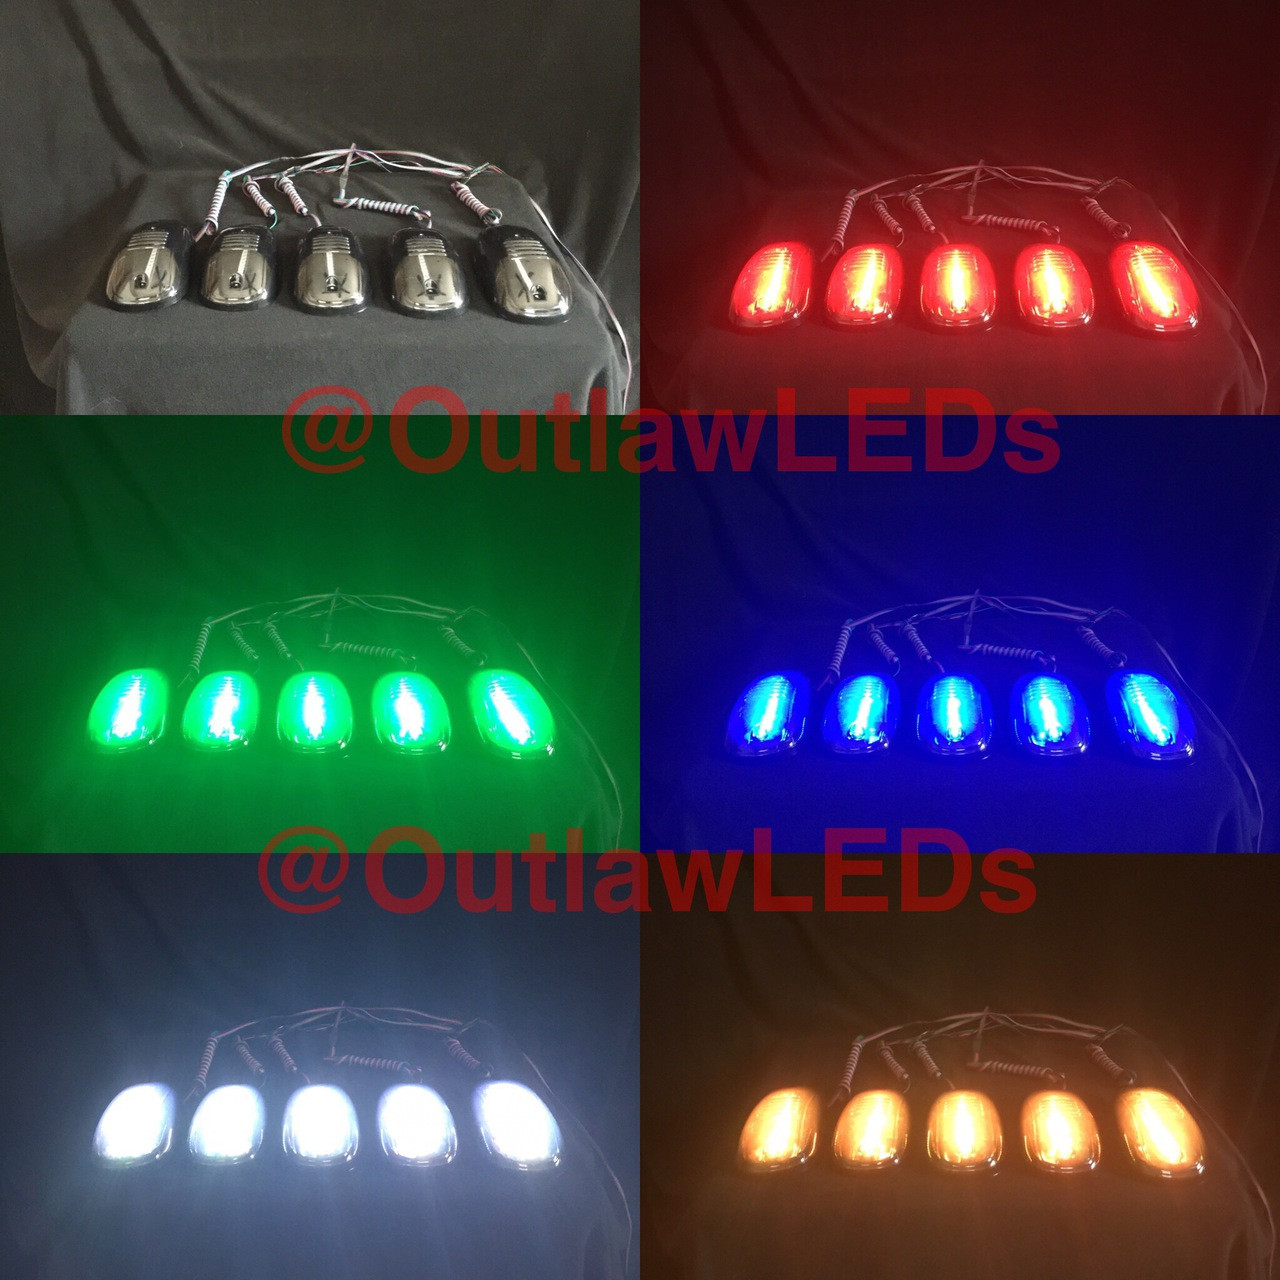 Color Changing Cab Lights Outlawleds